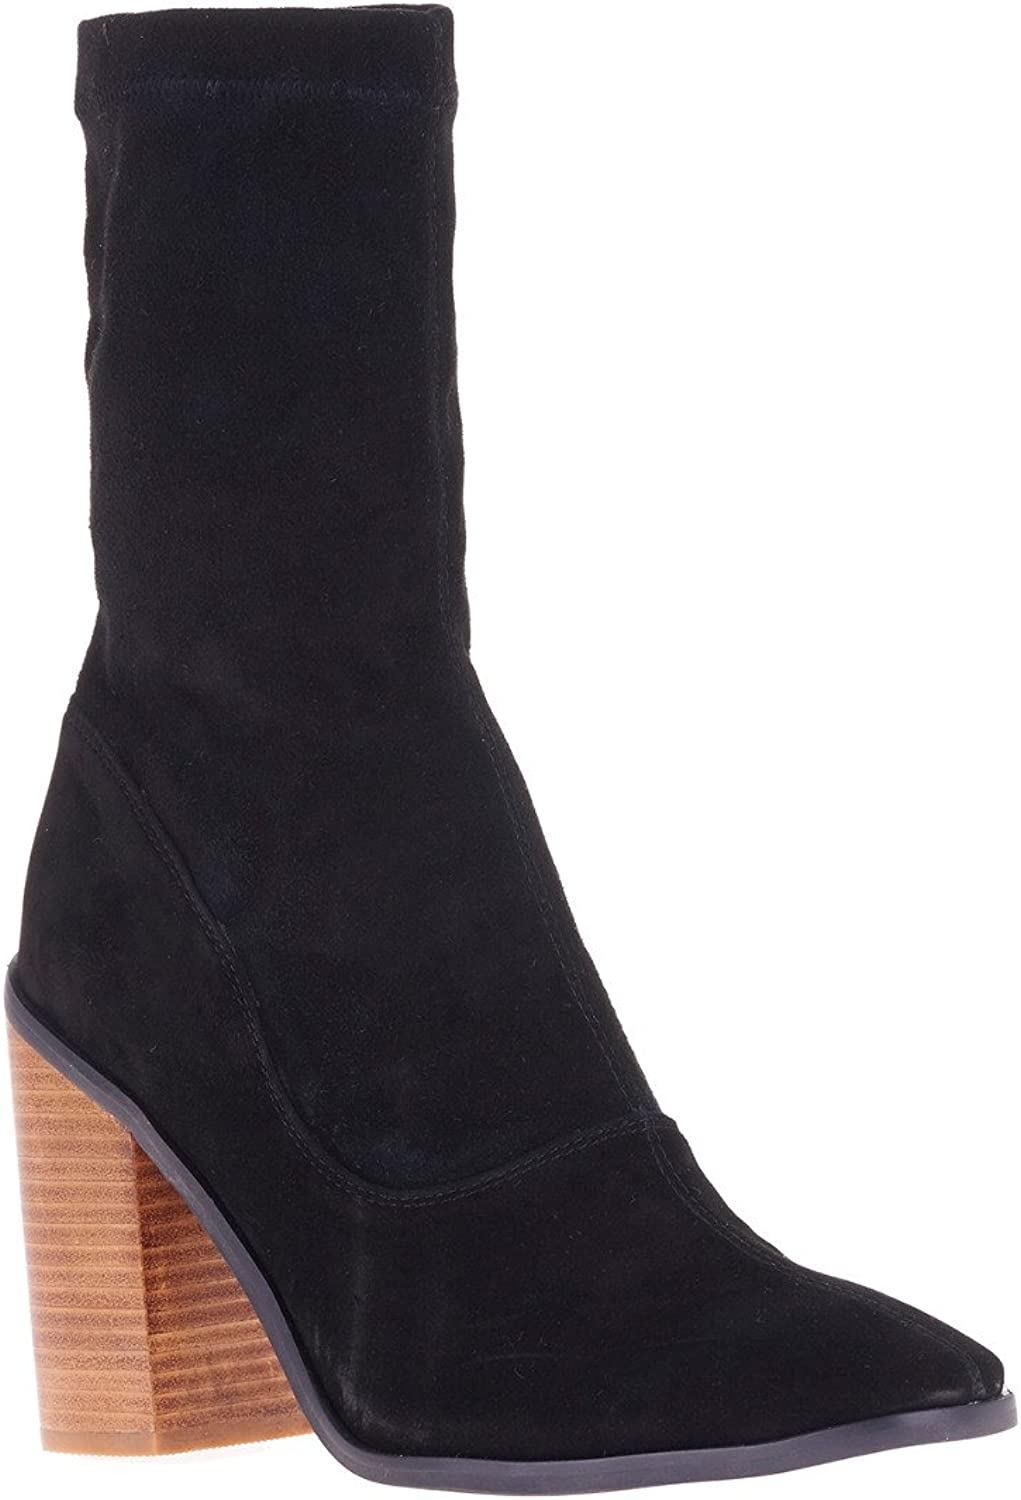 Sol Sana Womens Chloe Boot Ankle Bootie